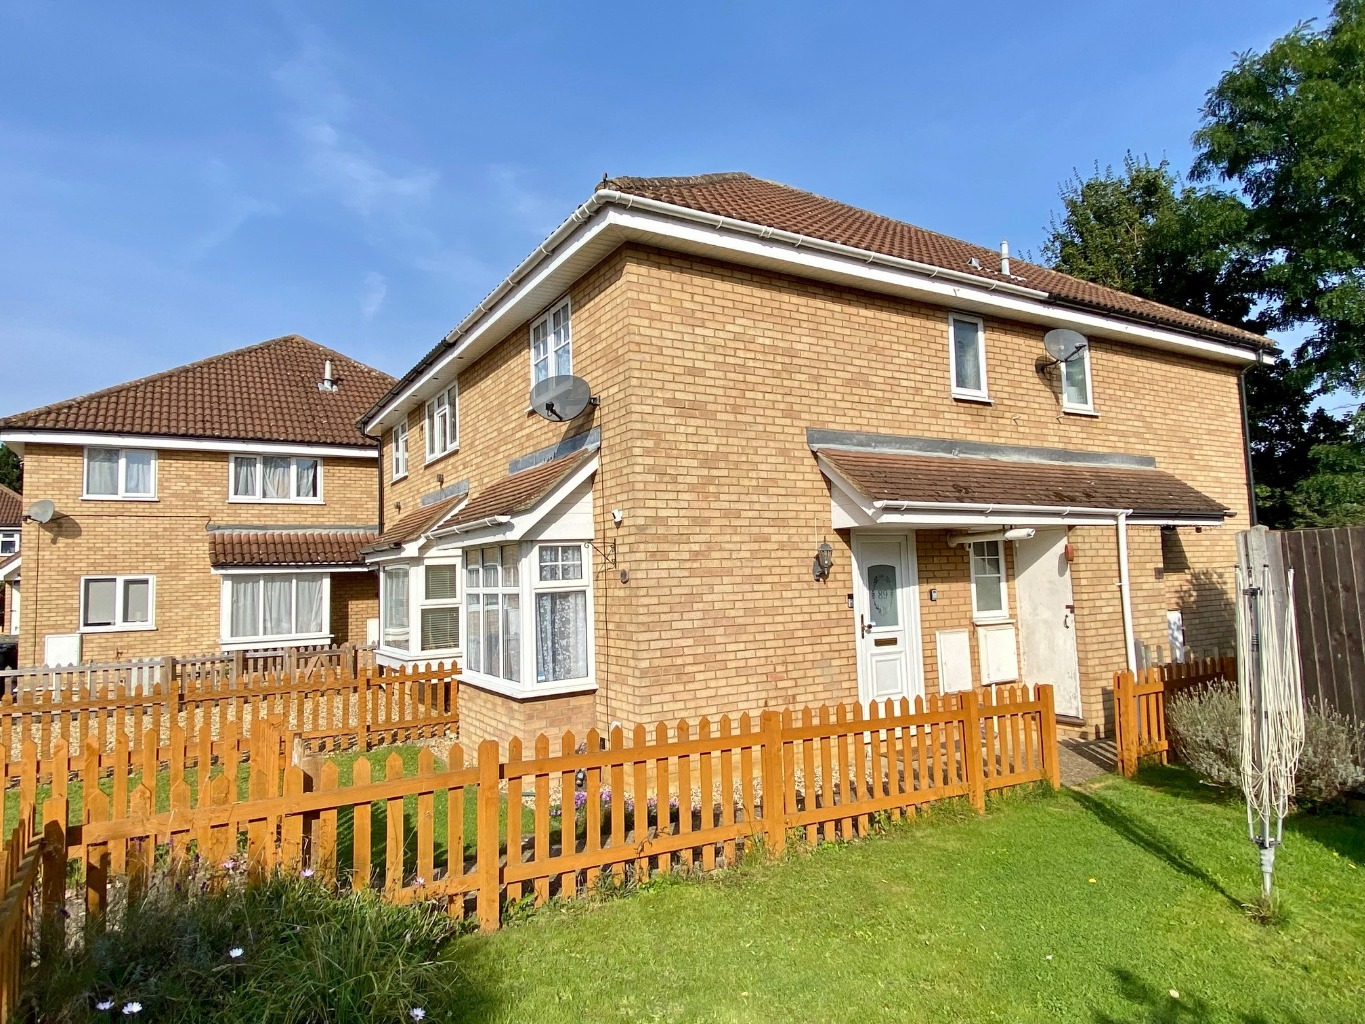 1 bed semi-detached house for sale in Meadowsweet, St. Neots - Property Image 1